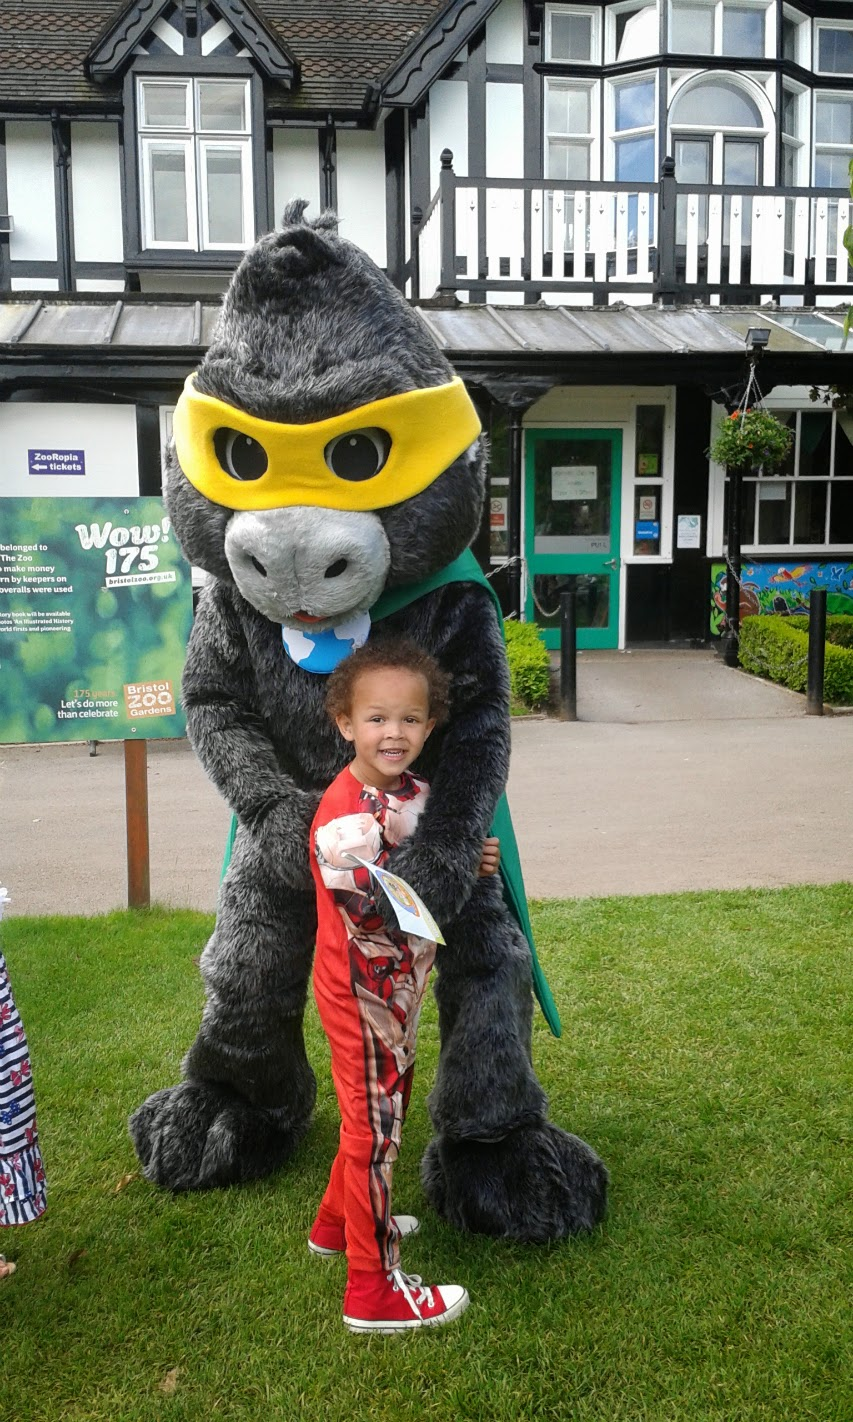 The Mascot of Bristol Zoo.